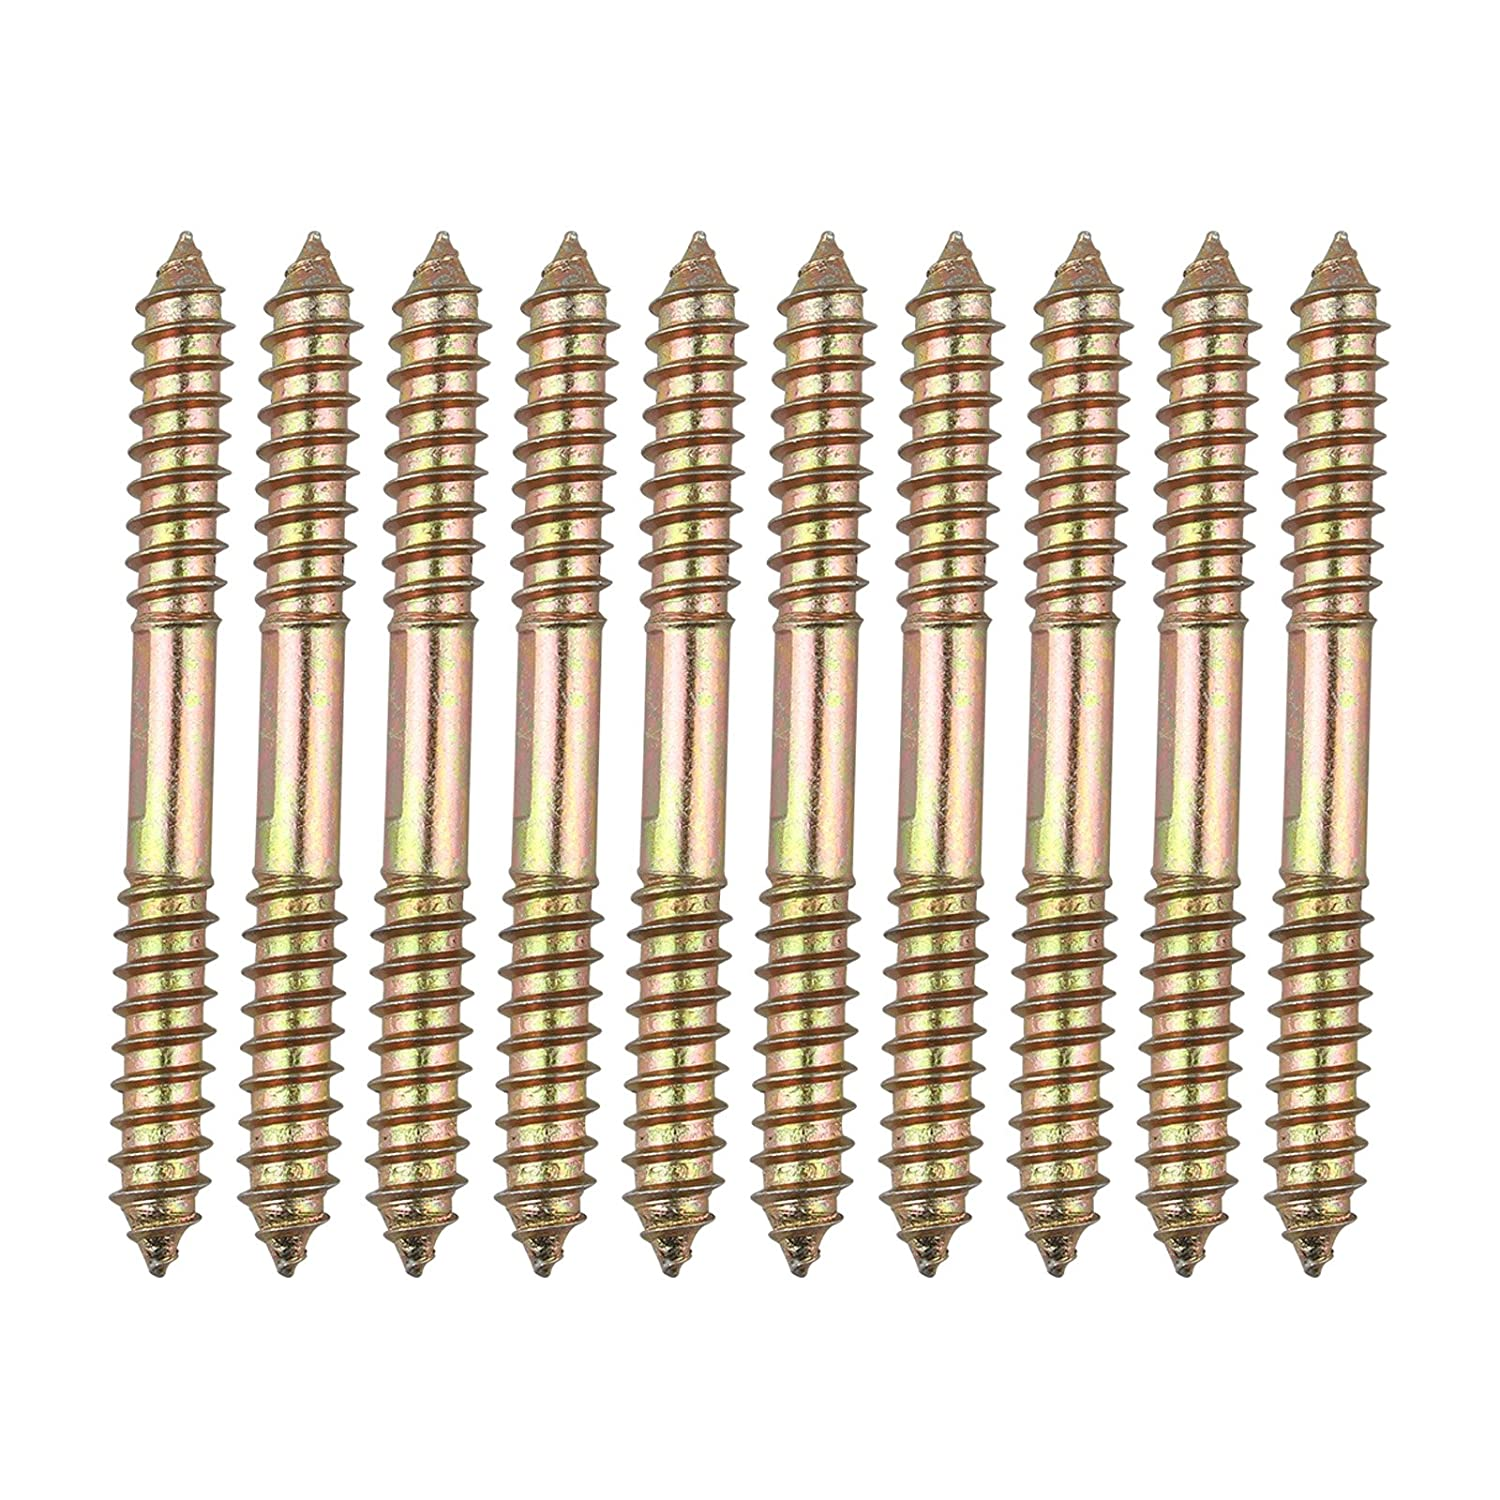 10Pcs M8 x 60mm Double Head Ended Wood to Wood Screws Self-Tapping Thread Bolts for Furniture Fixing Dowel